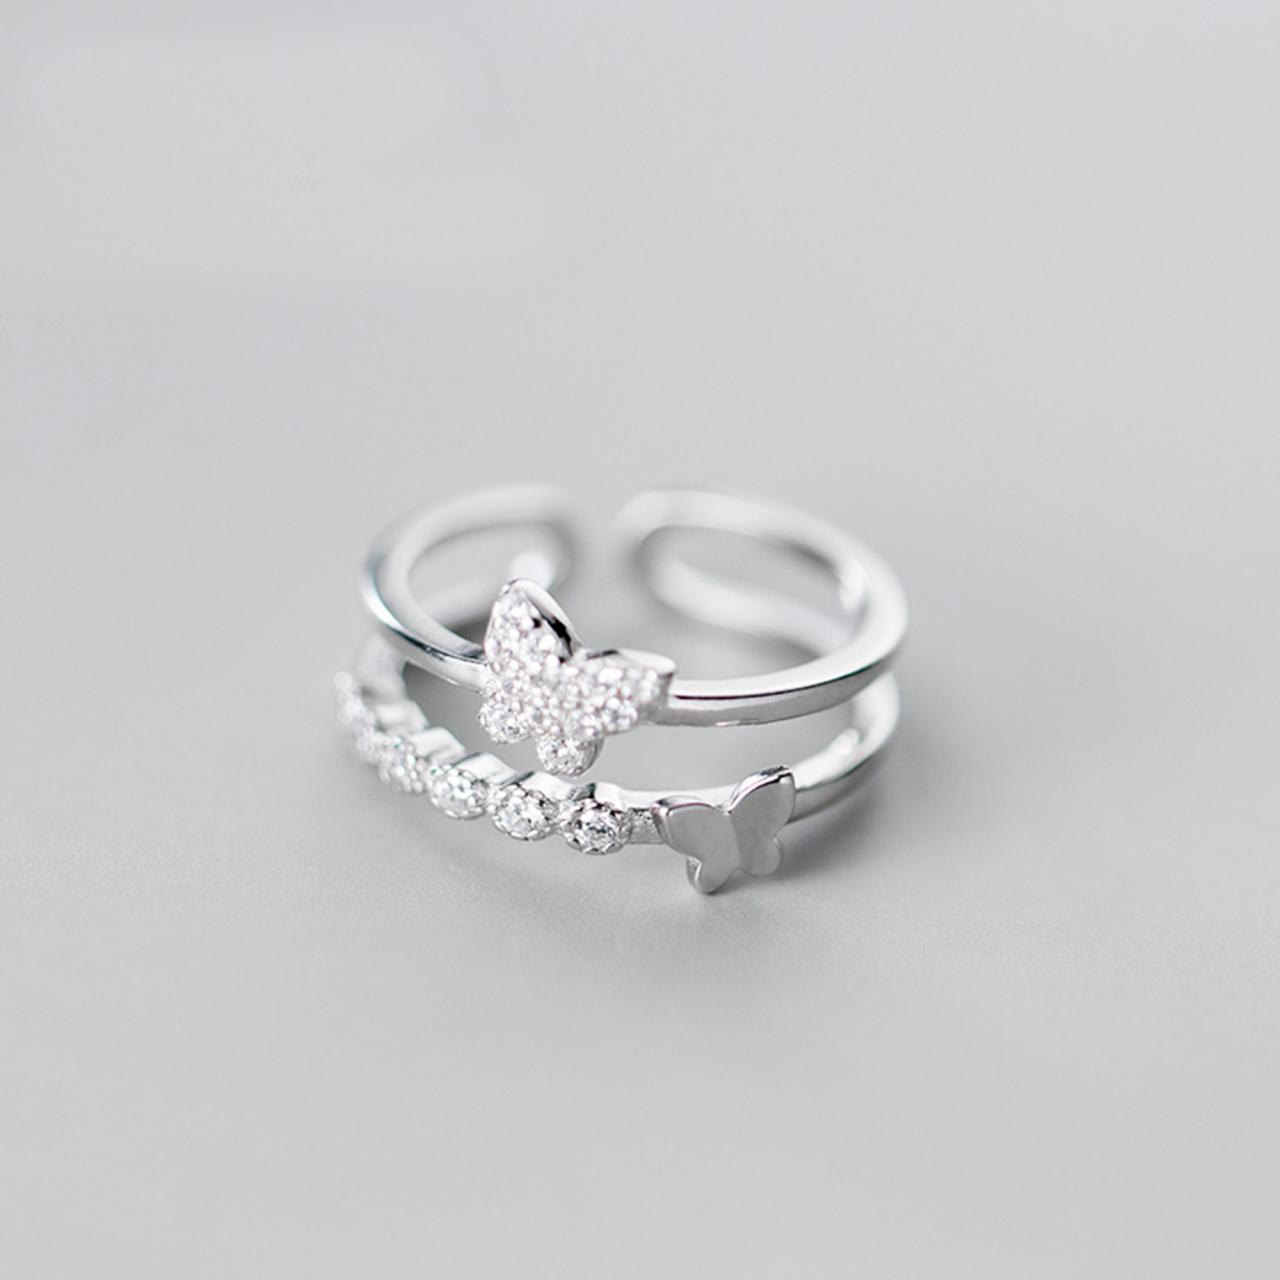 CZ Pave Butterfly, Sterling Silver Adjustable Butterfly Ring, Minimalist Rings, Dainty Ring, Women Ring, Everyday Jewelry